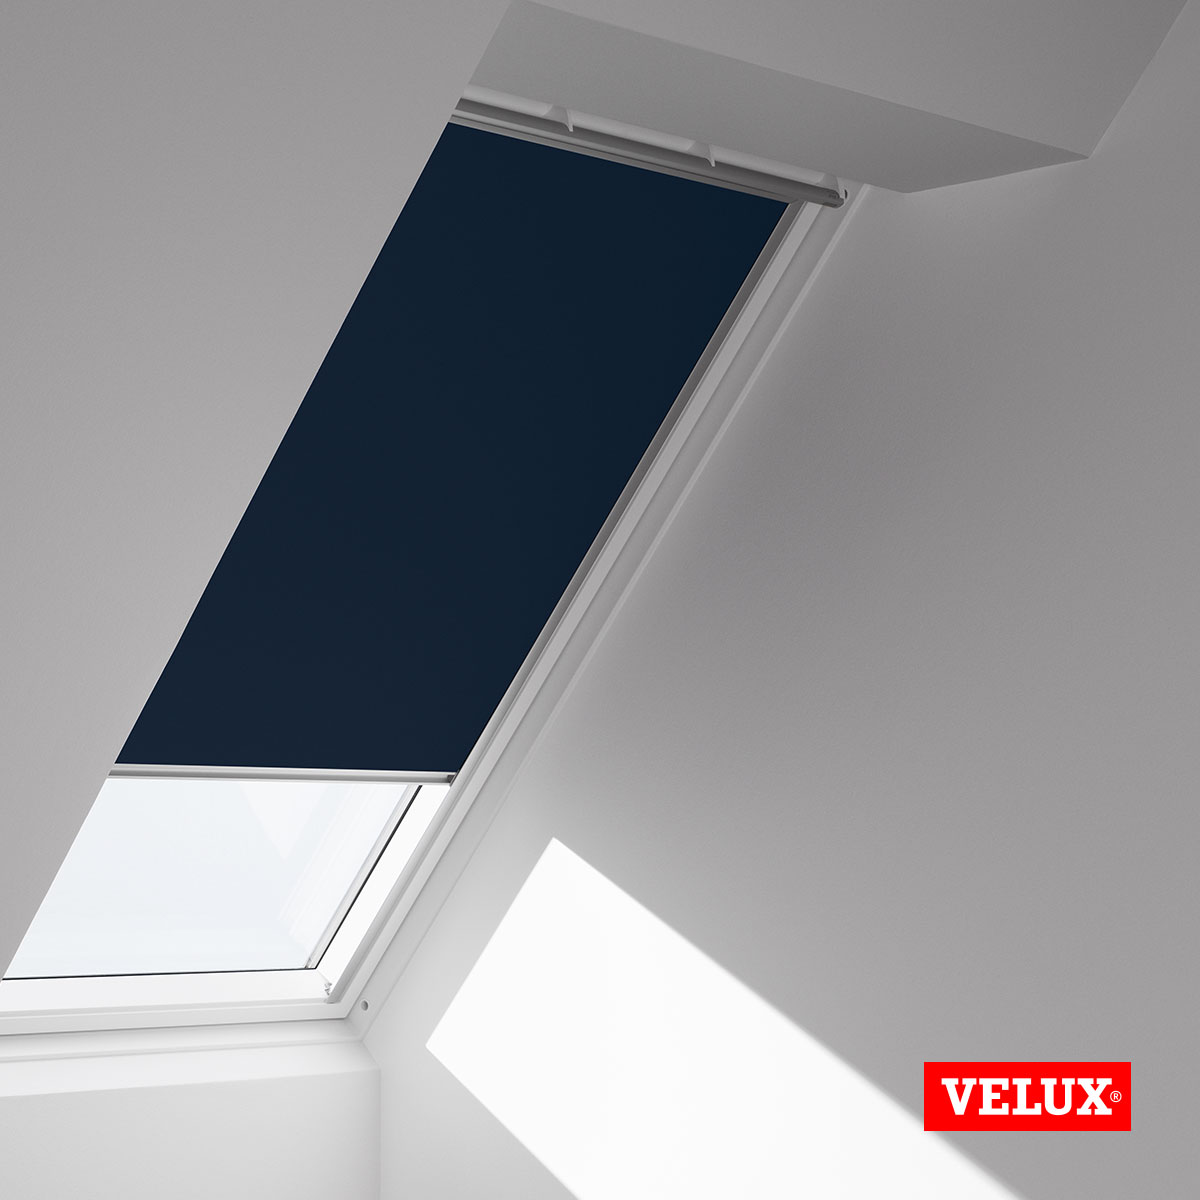 genuine velux blackout blinds match your velux skylight roof window many colours ebay. Black Bedroom Furniture Sets. Home Design Ideas